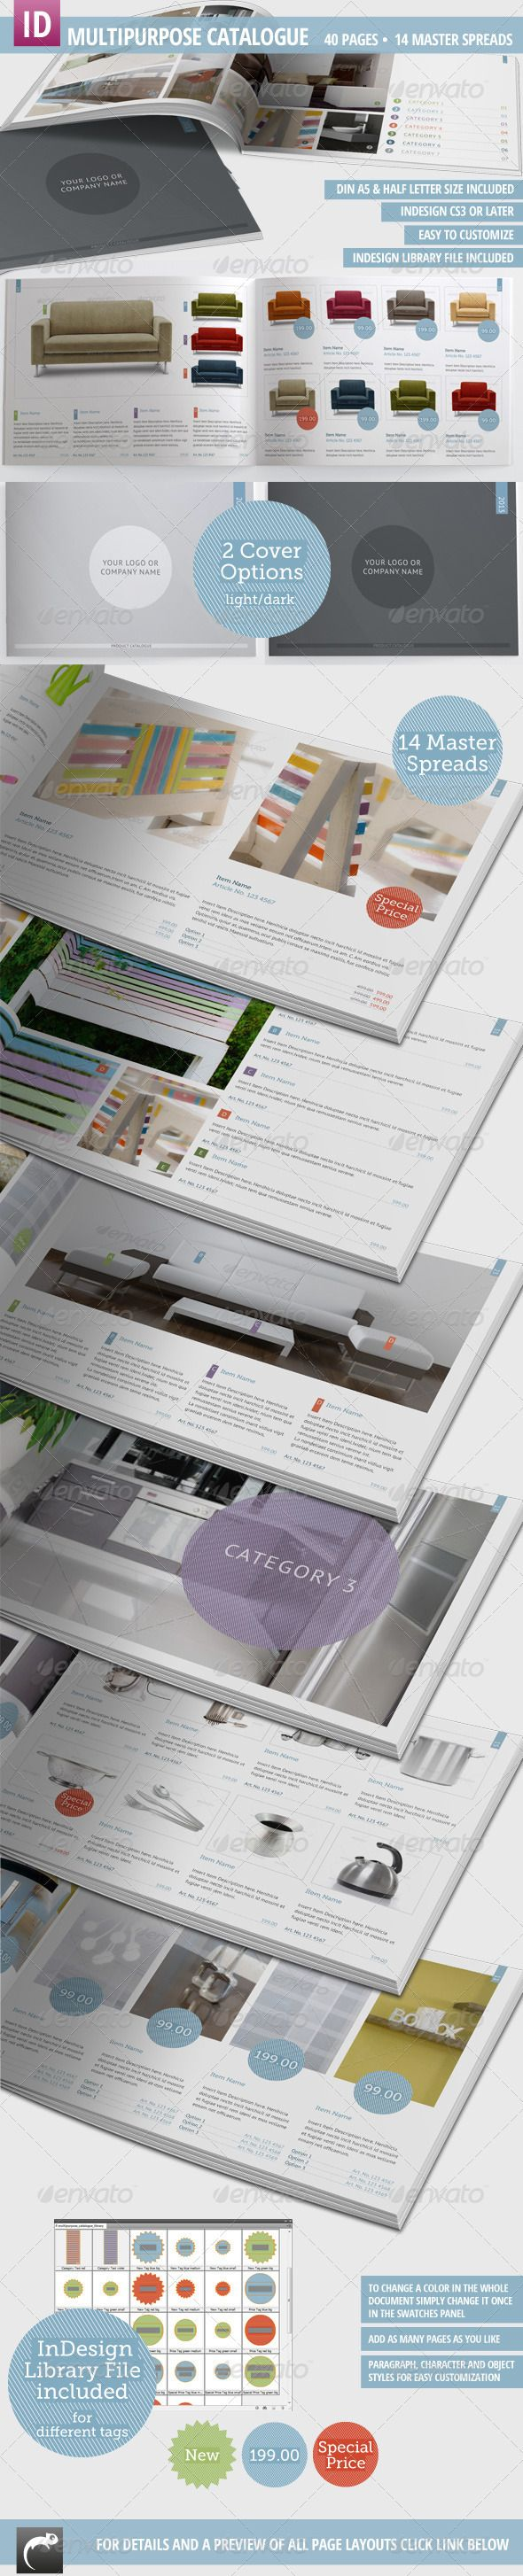 Print Templates - Multipurpose Product Catalogue - 40 Pages | GraphicRiver